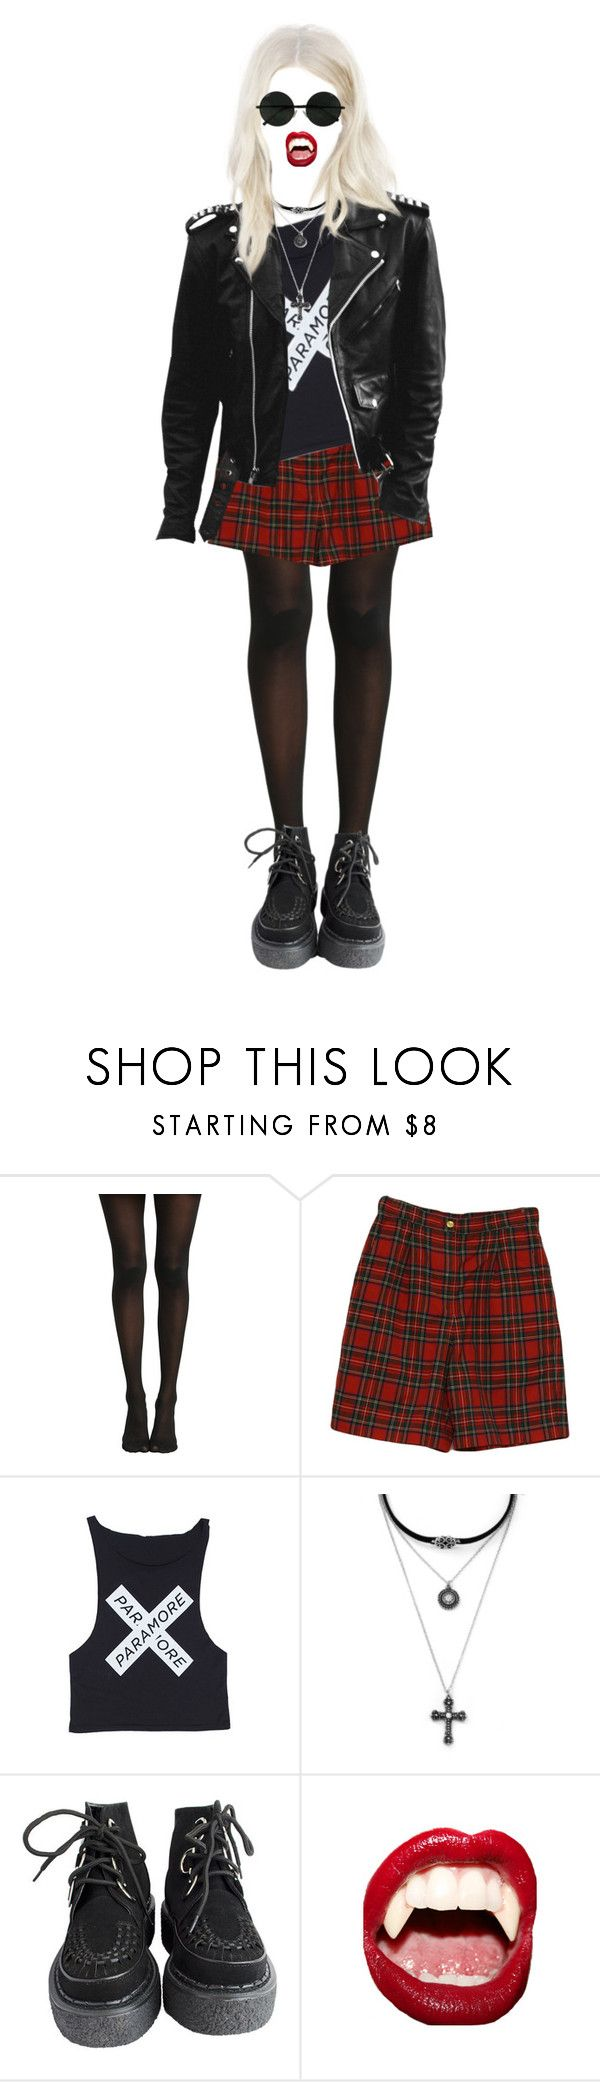 """1261"" by anastaziah2014 ❤ liked on Polyvore featuring Liz Claiborne, Forever 21 and Manic Panic NYC"